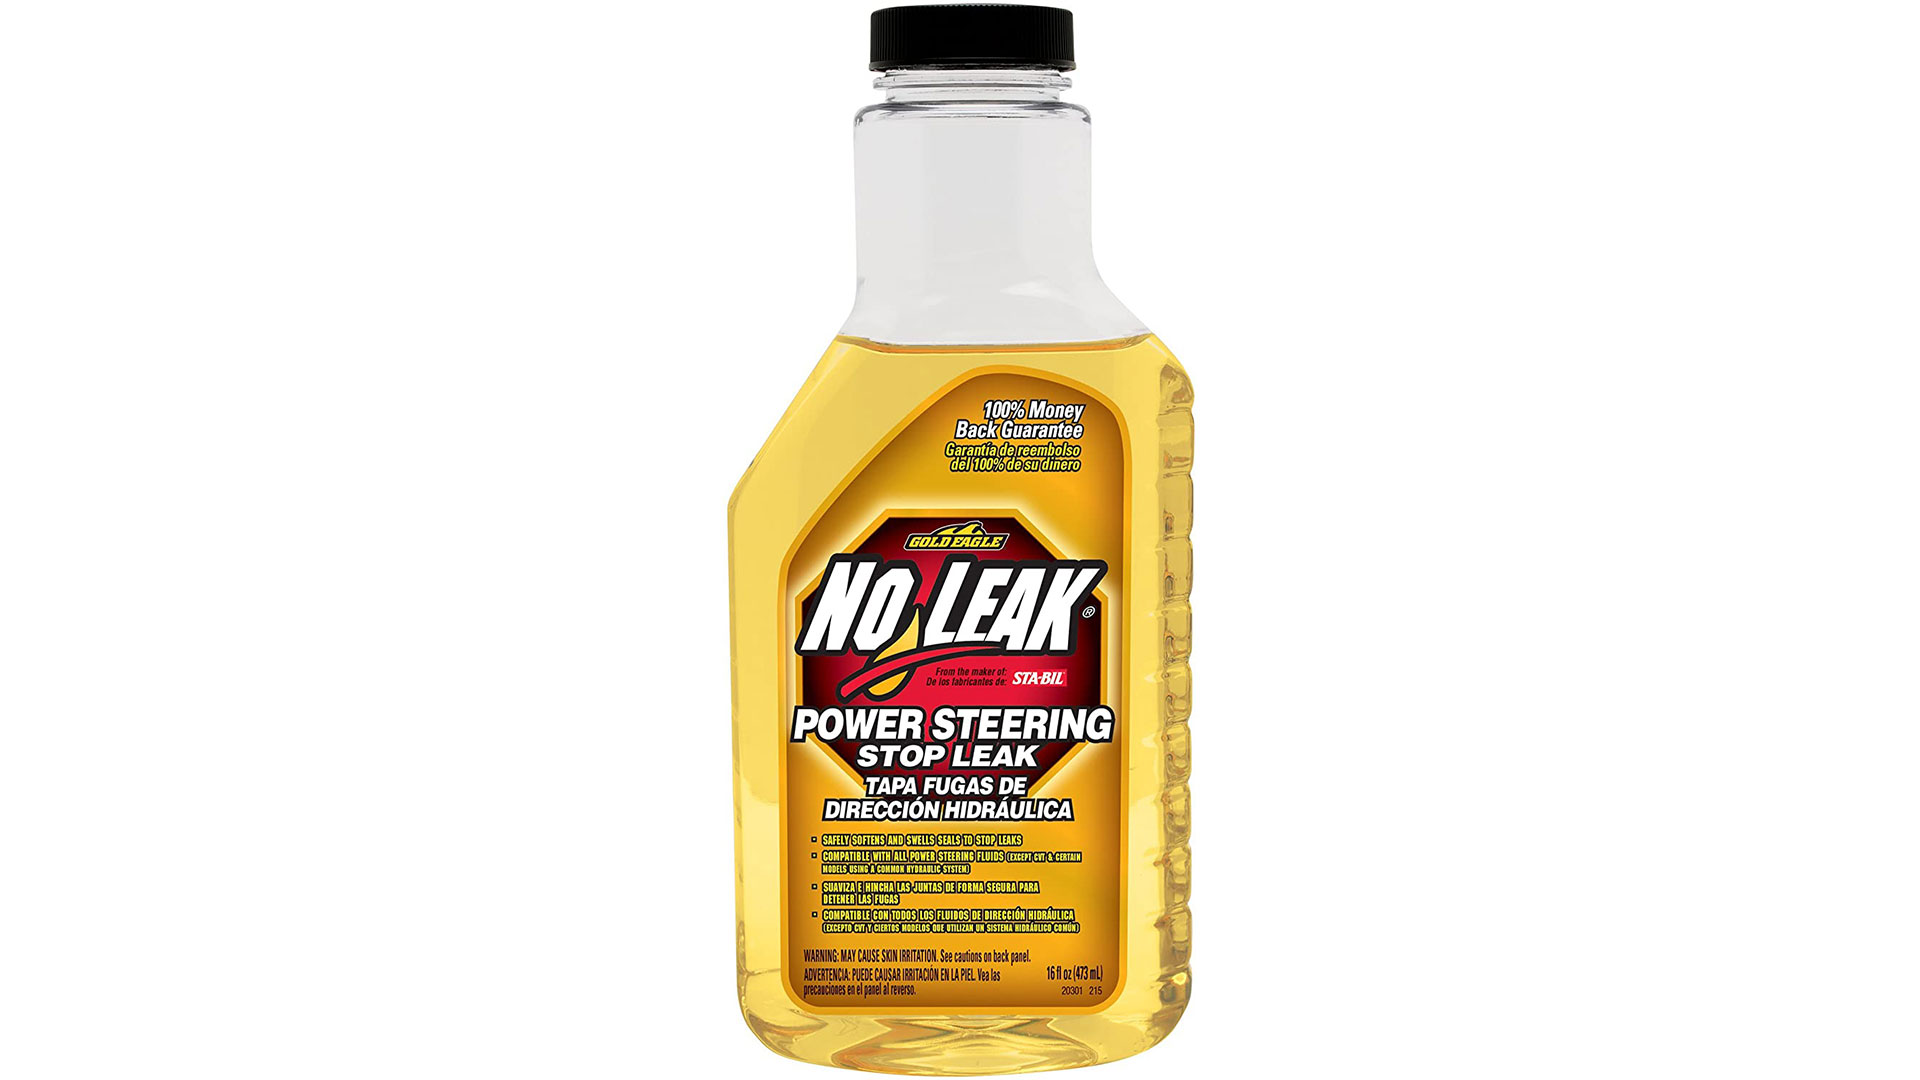 no leak power steering stop leak